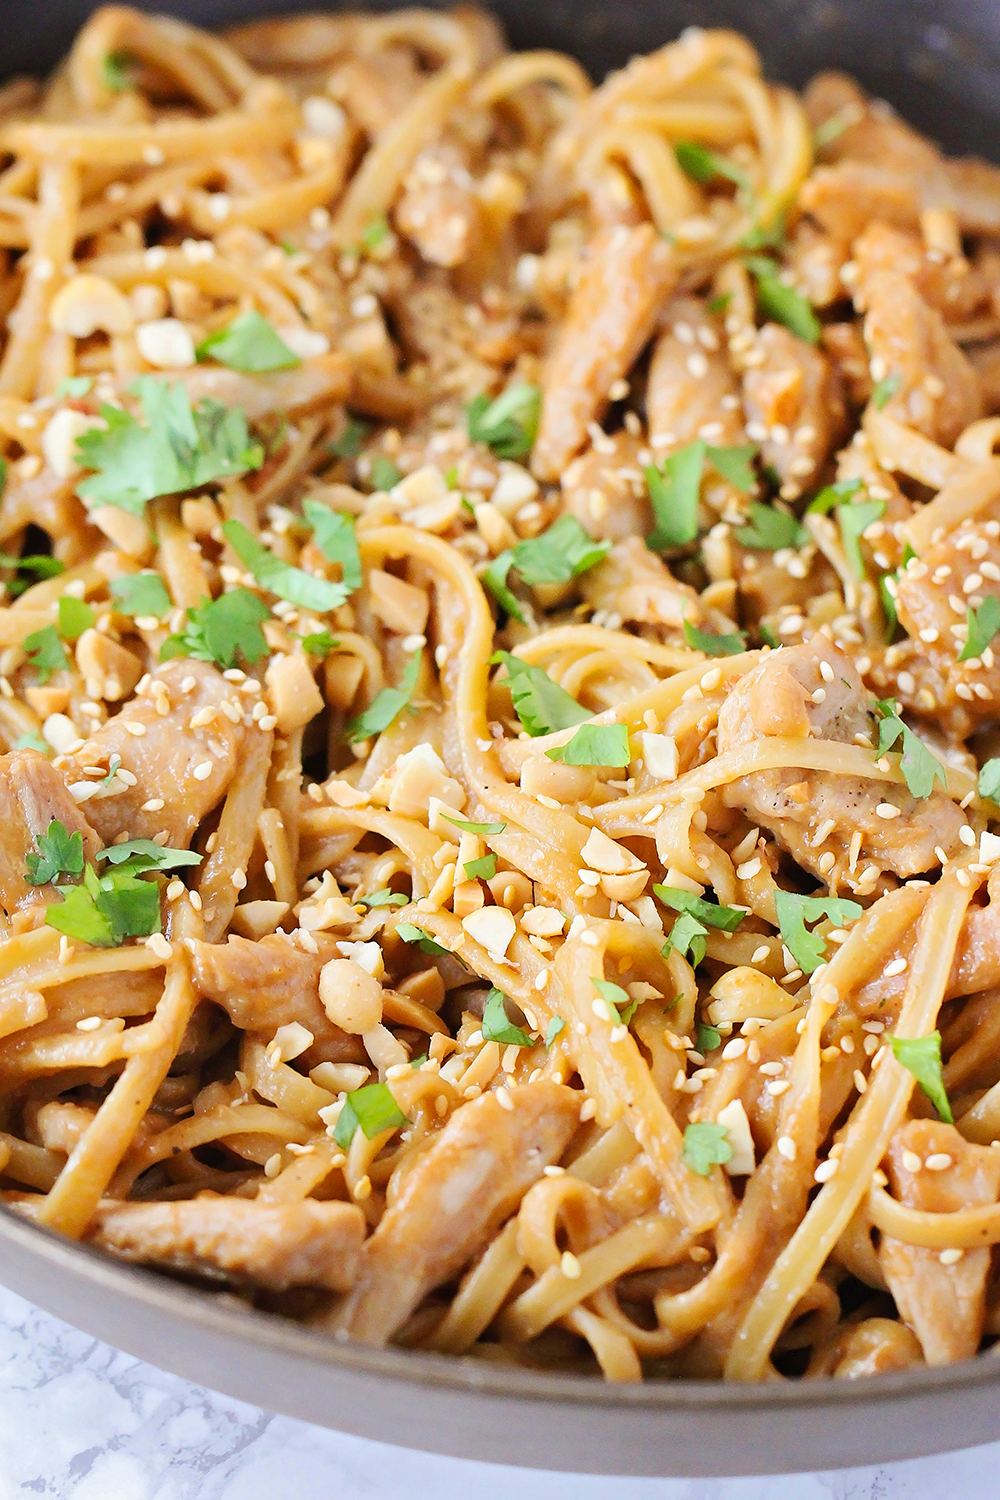 These flavorful and savory sesame peanut noodles are a simple and delicious dinner that's ready in about thirty minutes!